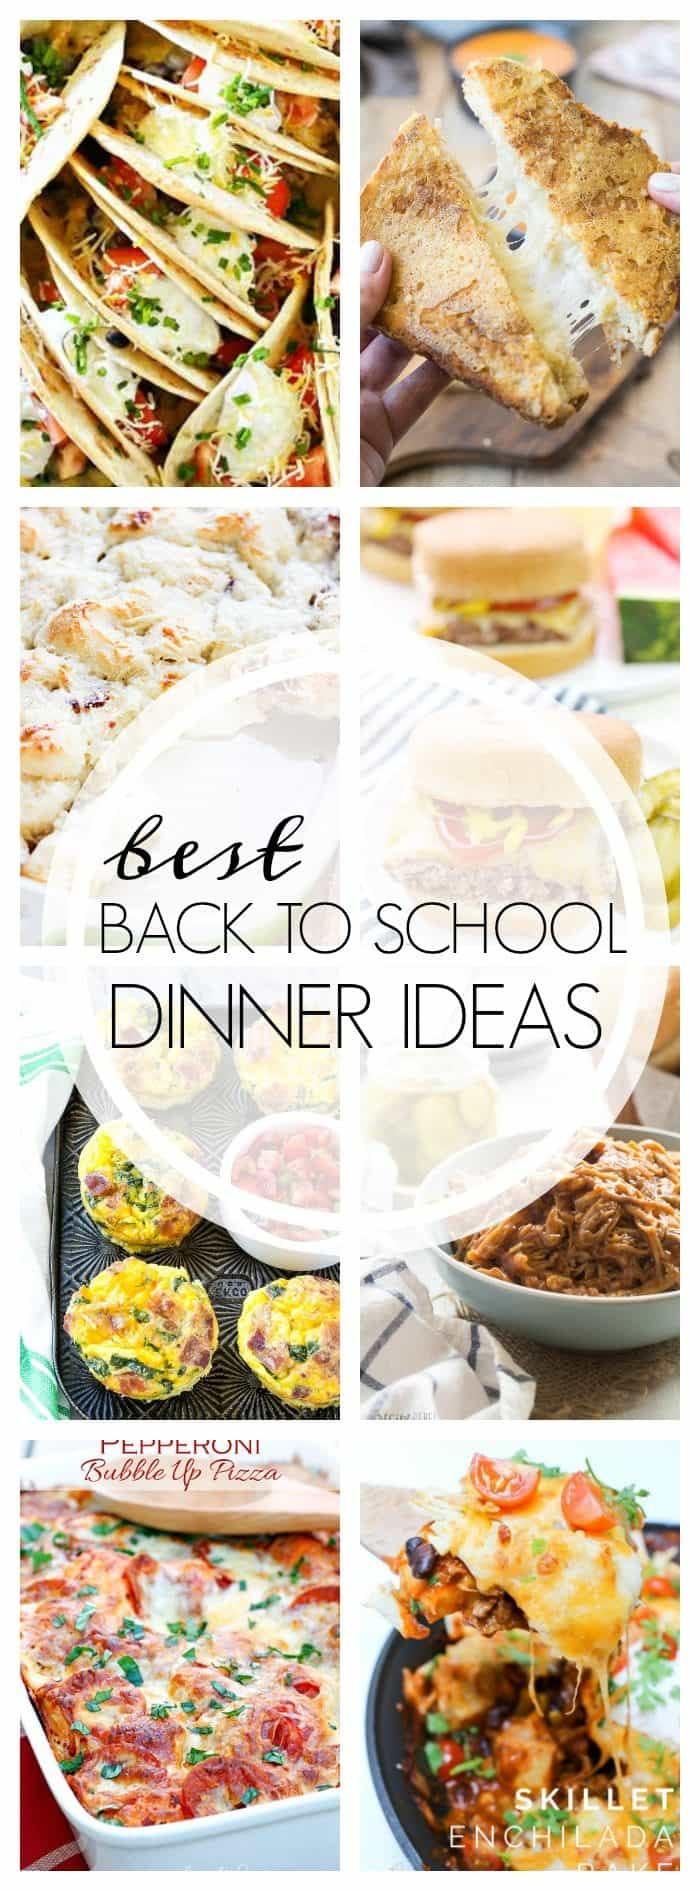 best-back-to-school-dinner-ideas-pin